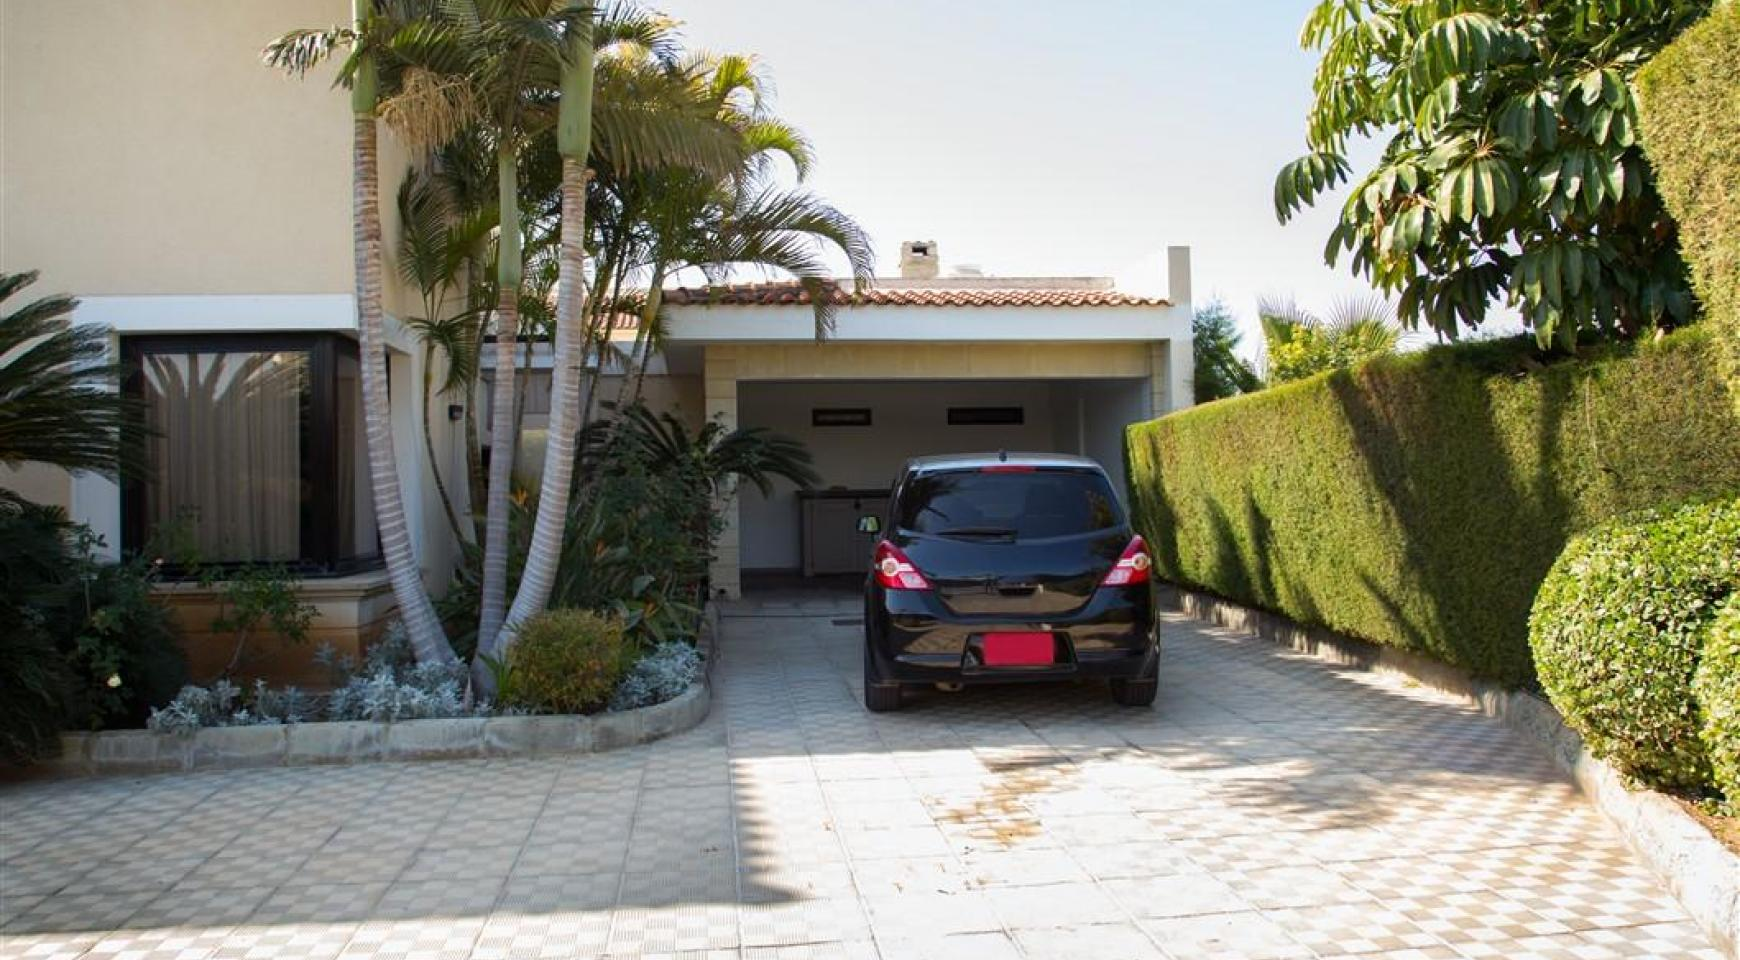 4 Bedroom Villa in Germasogeia Area - 5